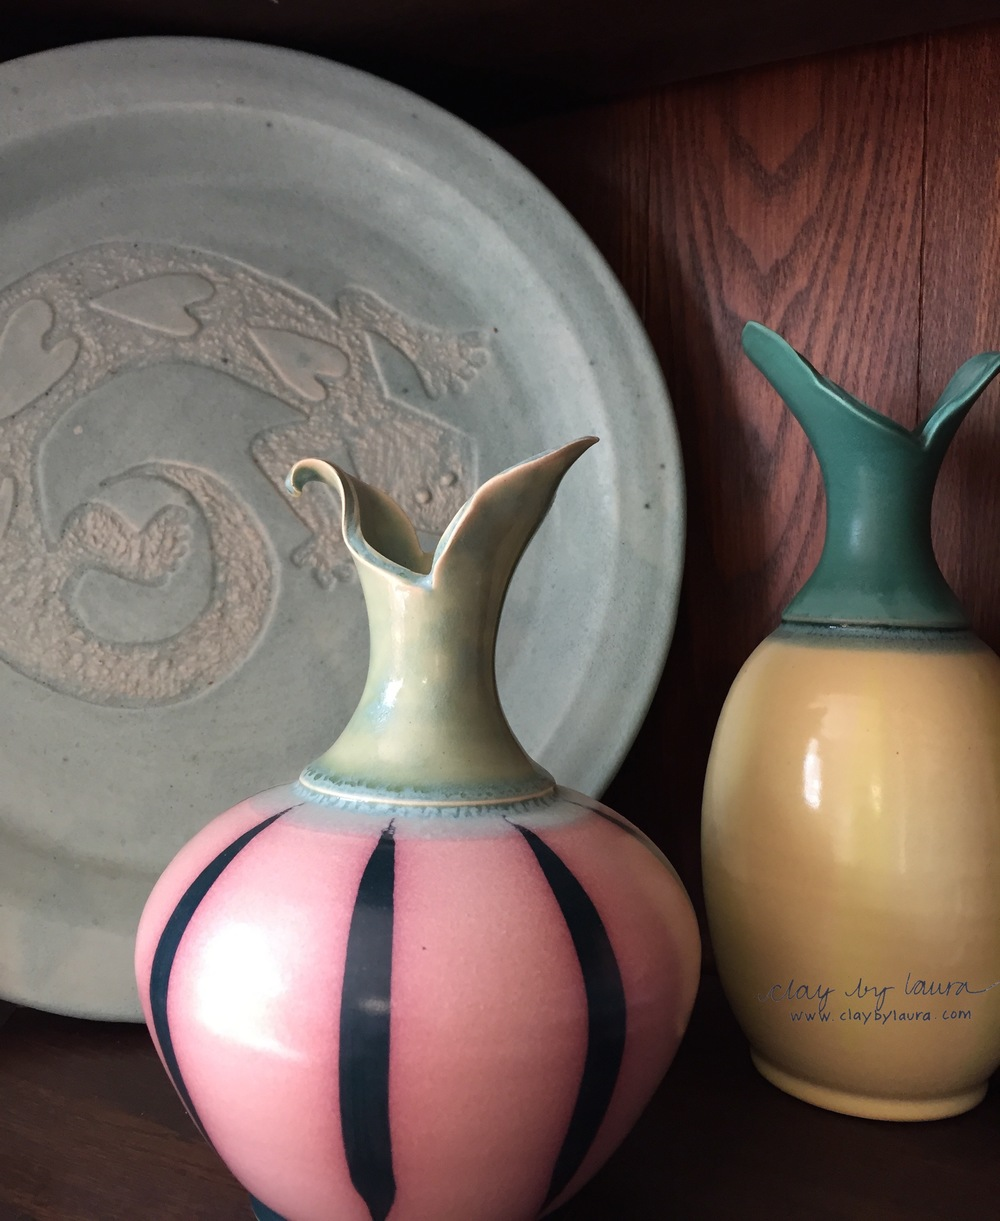 My pottery collection includes pieces like the carved platter I made in 1993 and interesting shapes and glazes of other clay artists I like.